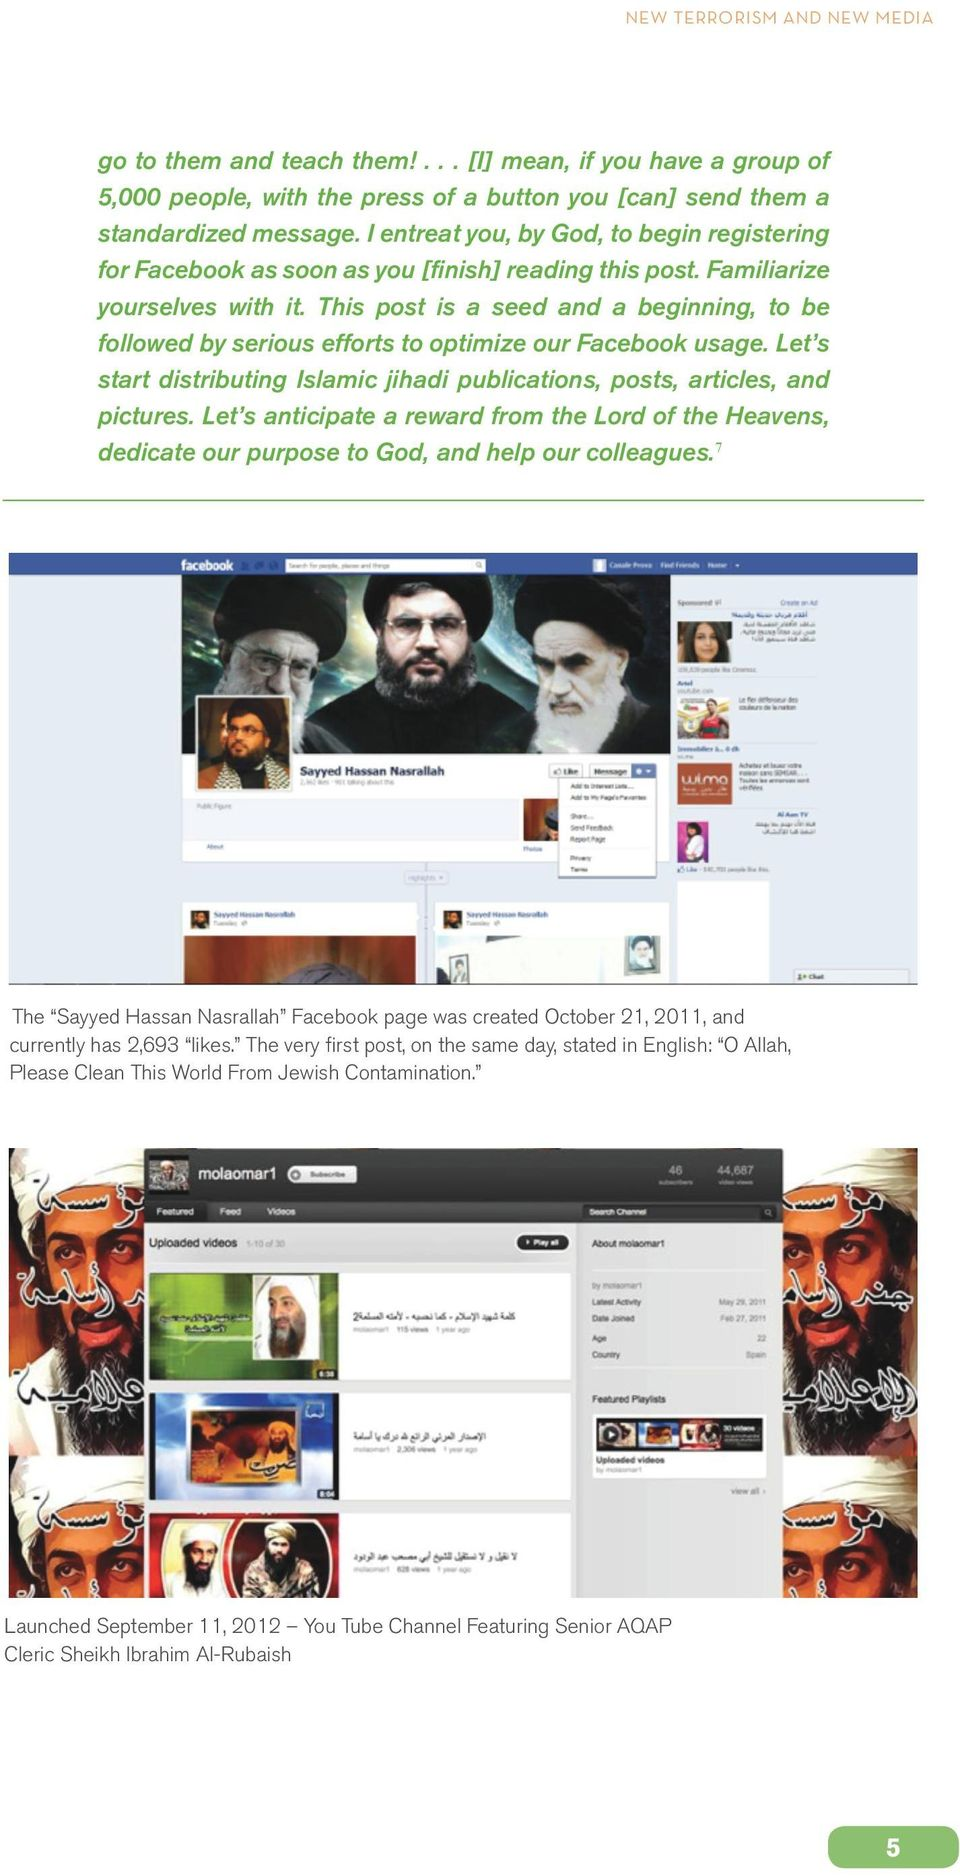 This post is a seed and a beginning, to be followed by serious efforts to optimize our Facebook usage. Let s start distributing Islamic jihadi publications, posts, articles, and pictures.